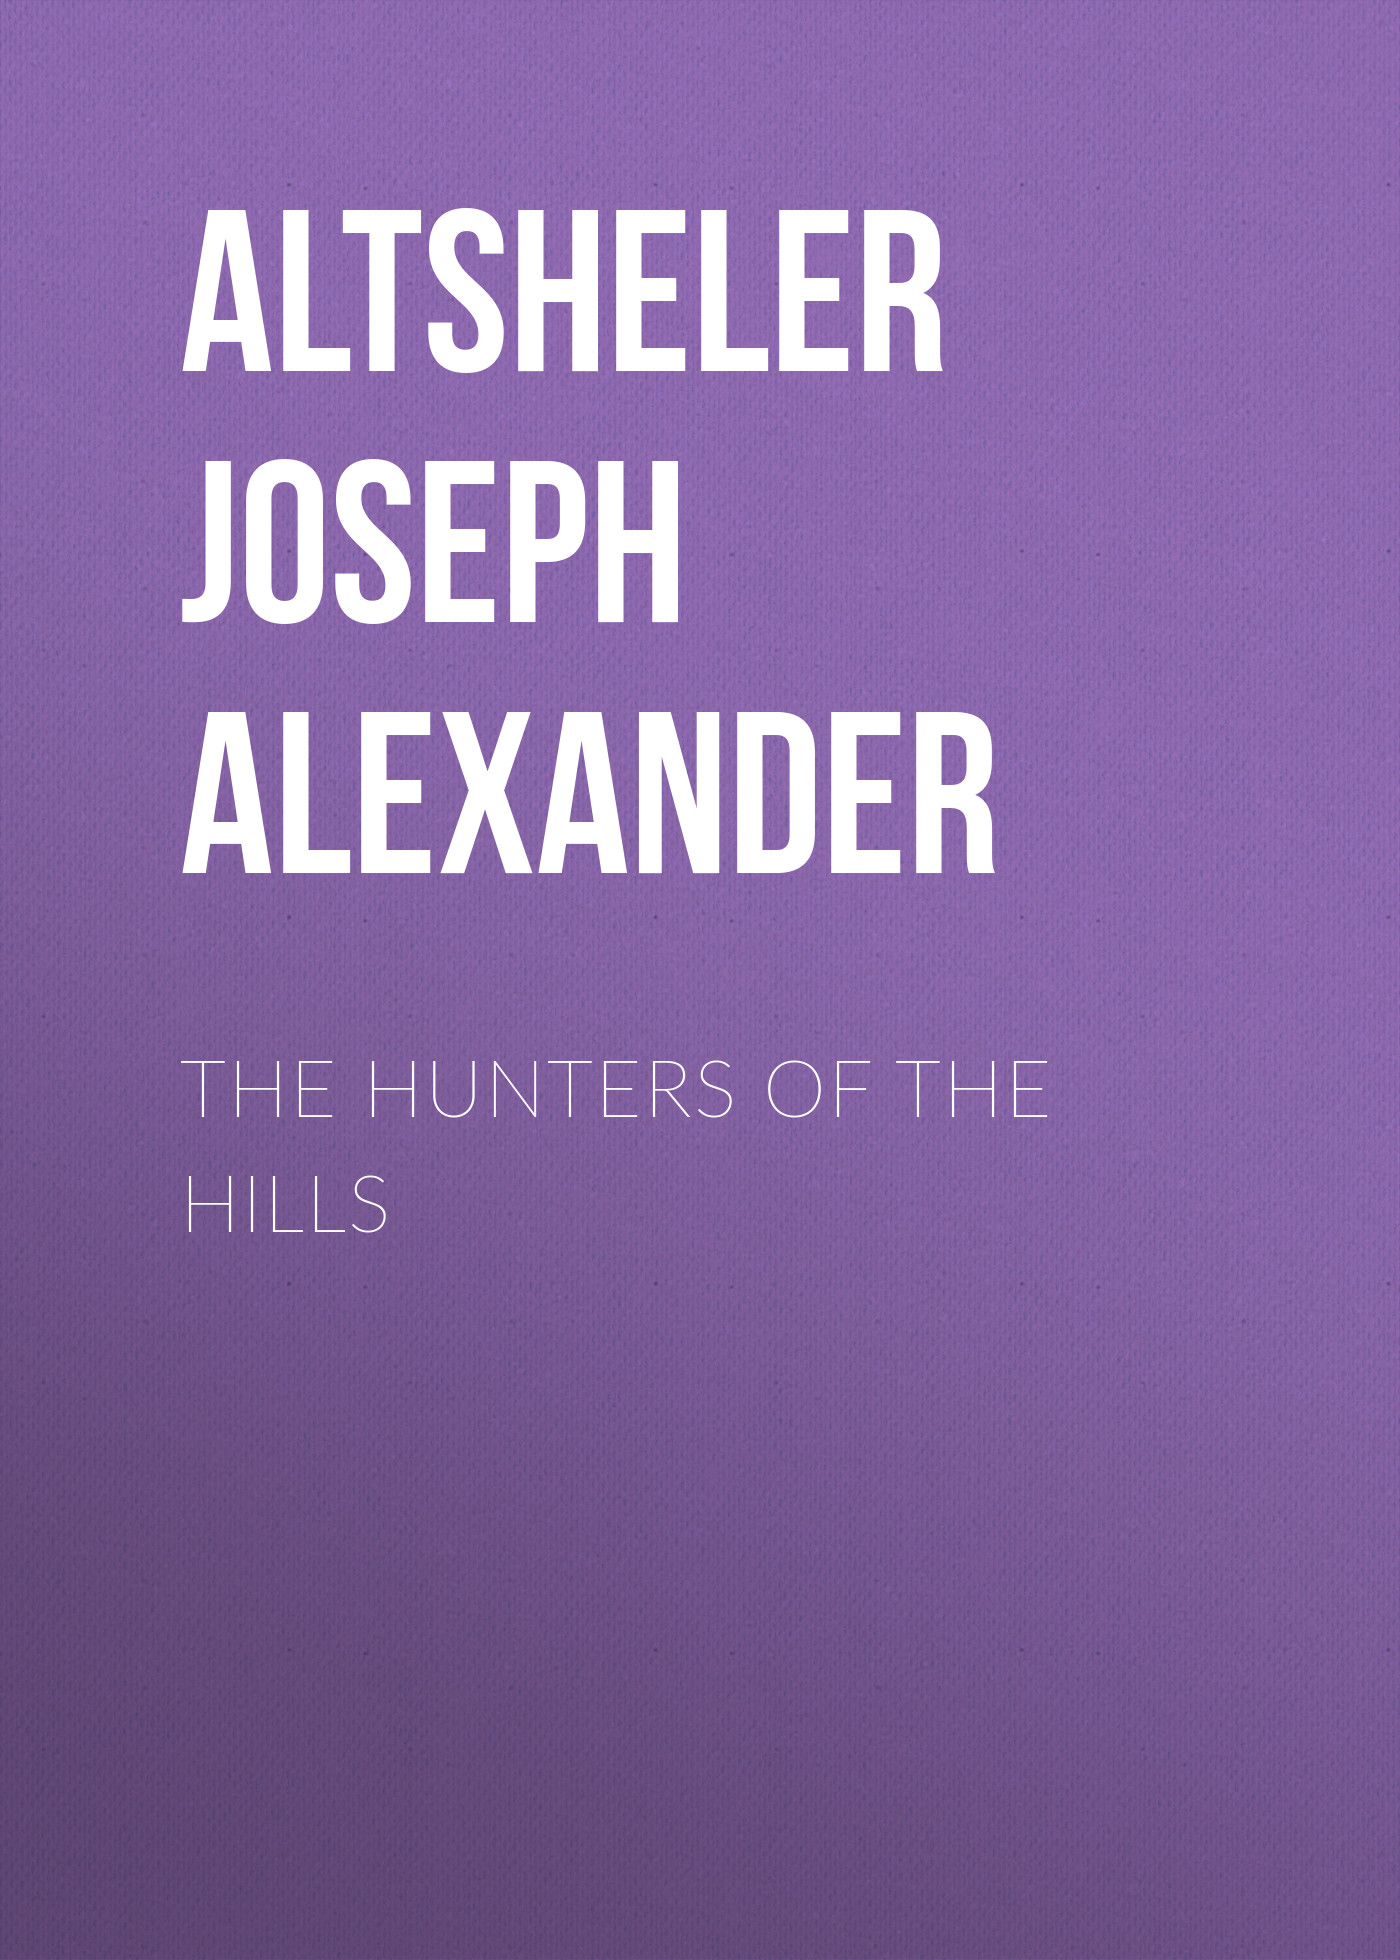 Altsheler Joseph Alexander The Hunters of the Hills skirt joseph alexander page 2